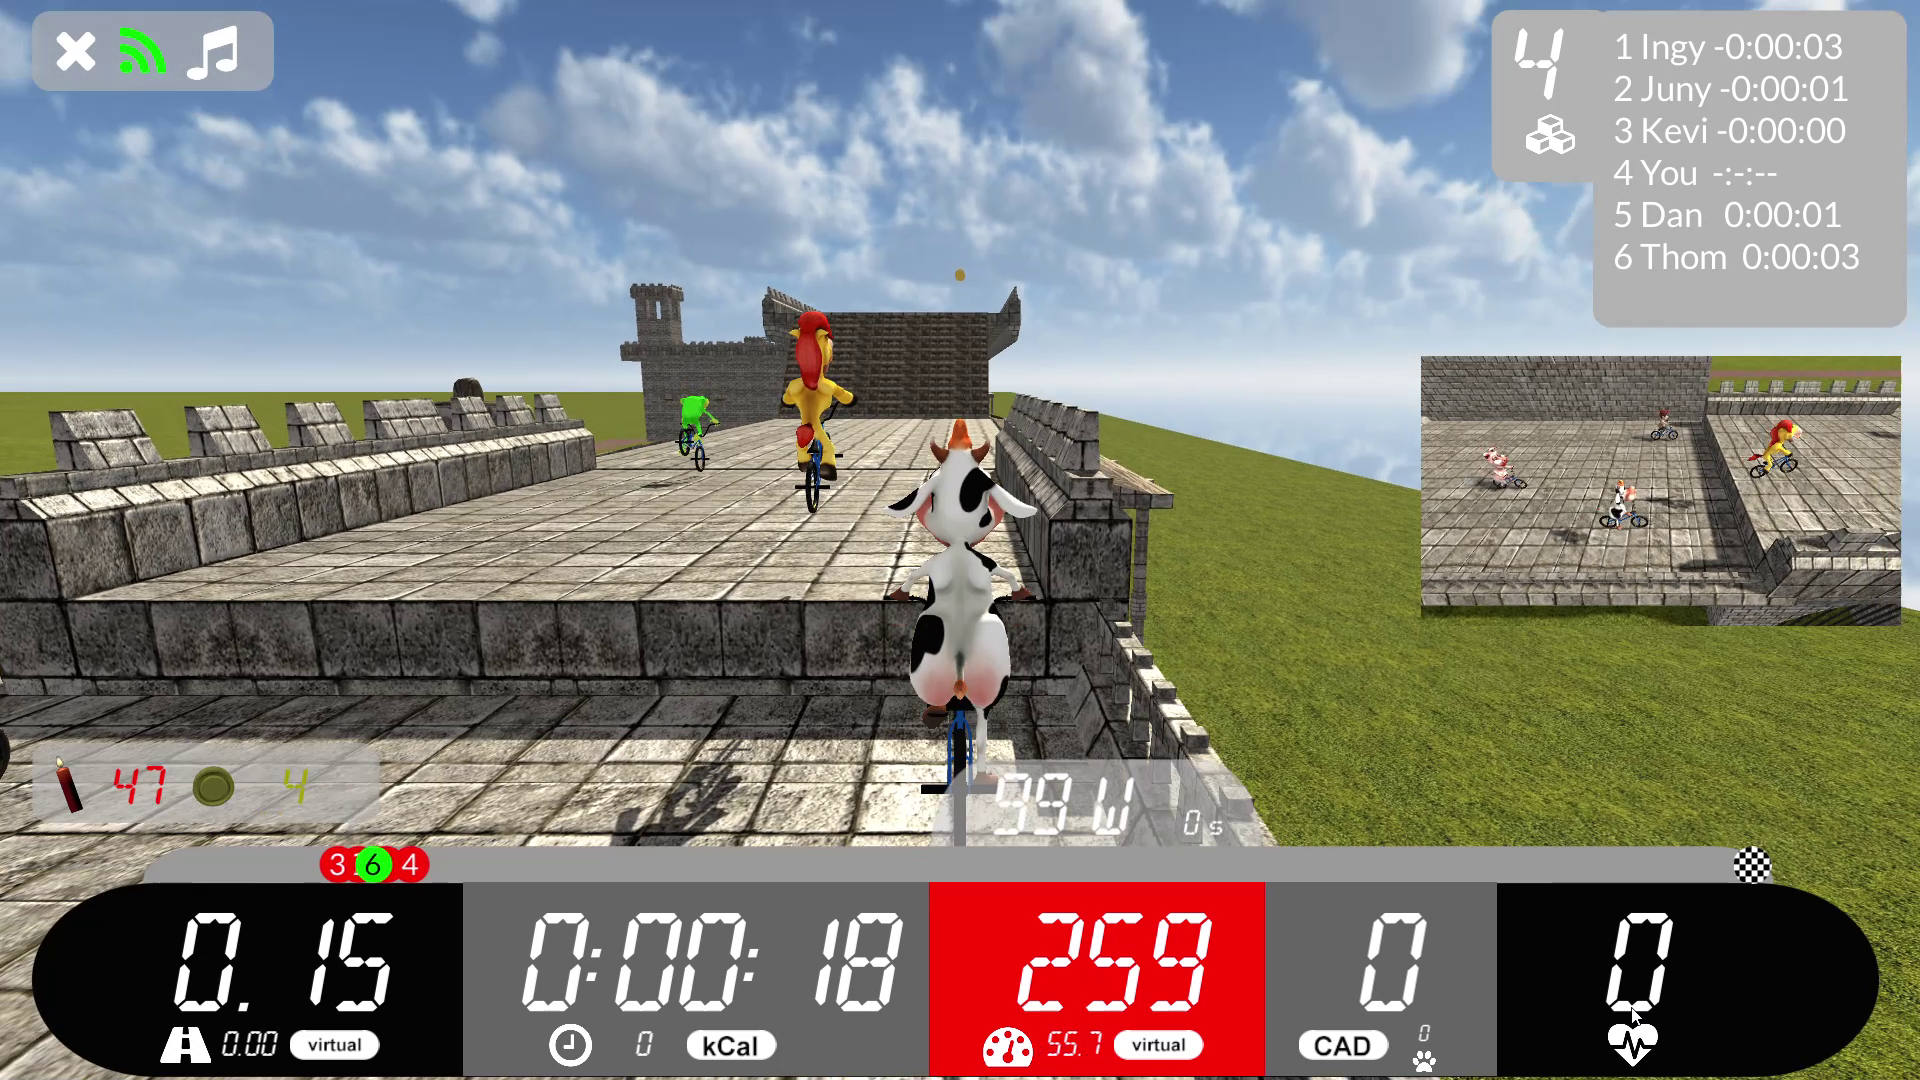 Arcade Fitness Castle level